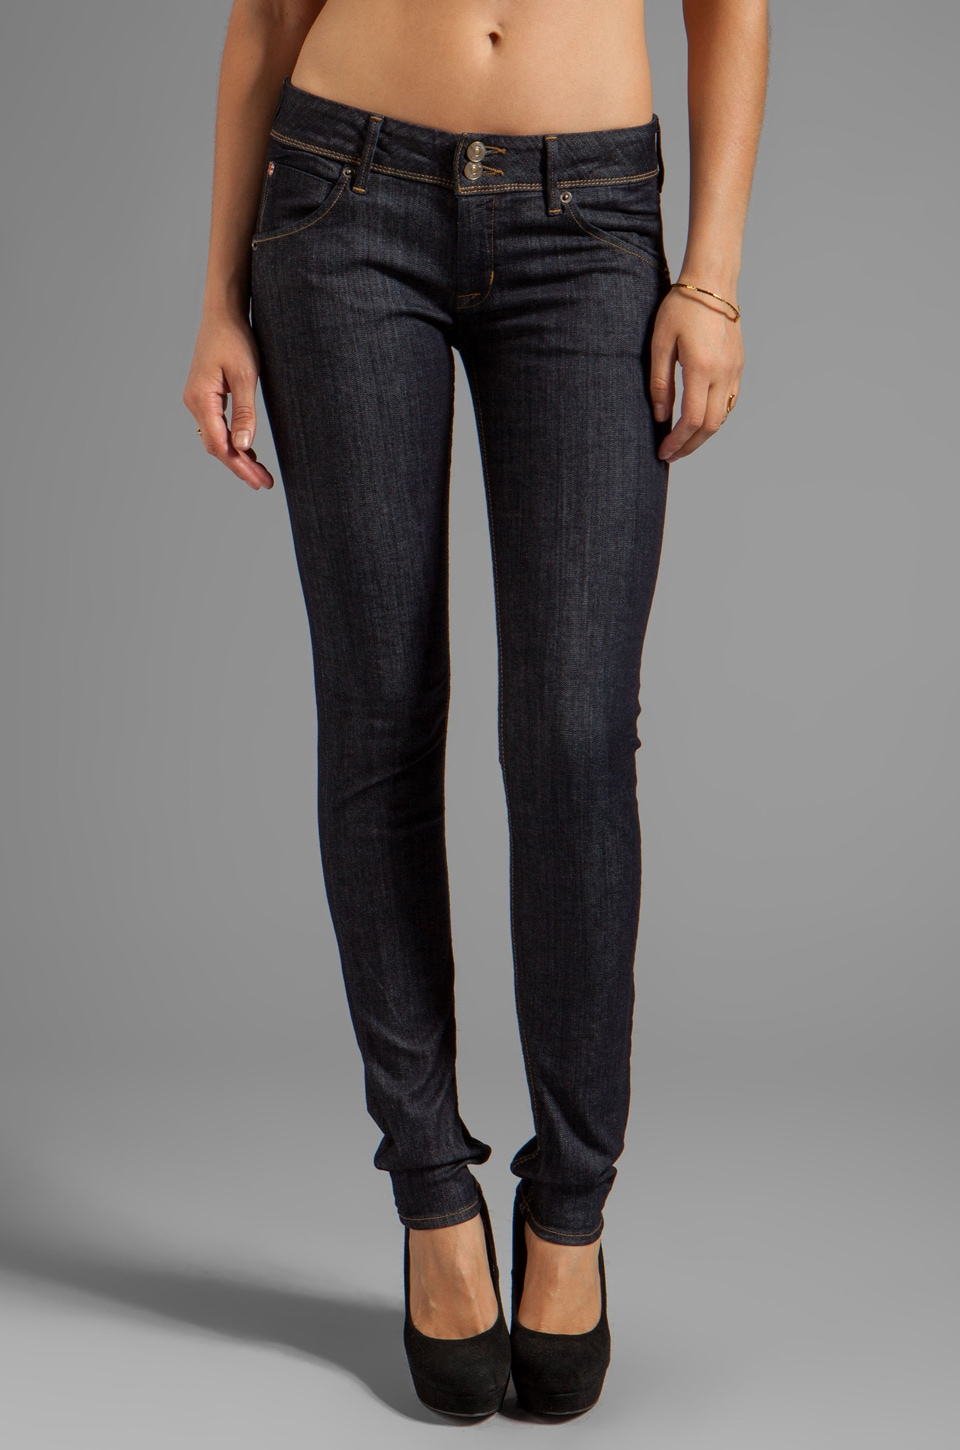 Hudson Jeans Collin Supermodel Skinny in Foley